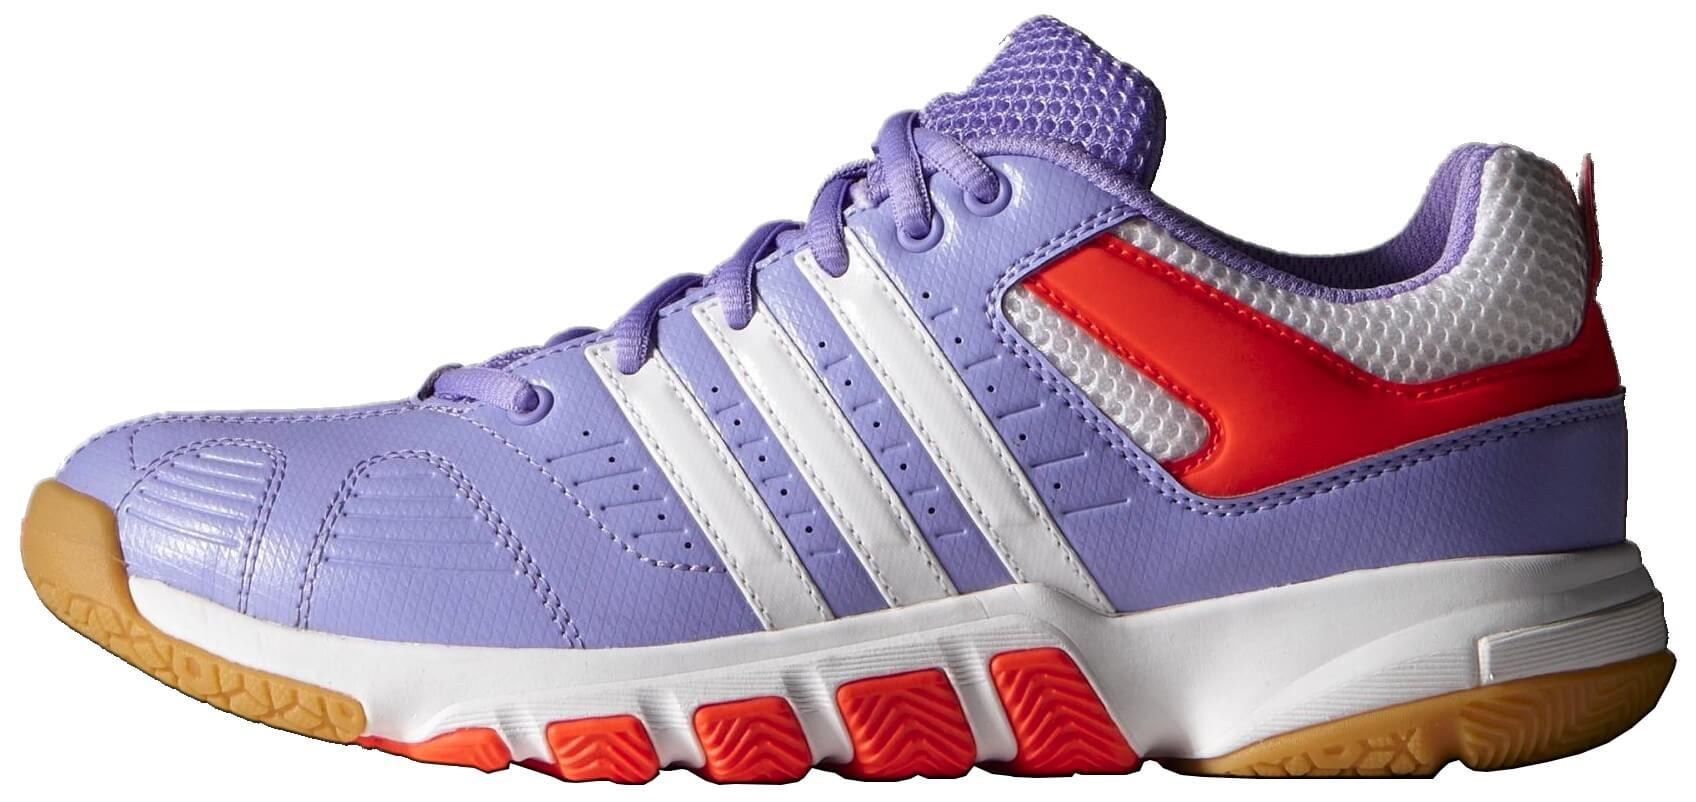 Chaussures Adidas Quickforce 5 men rouge